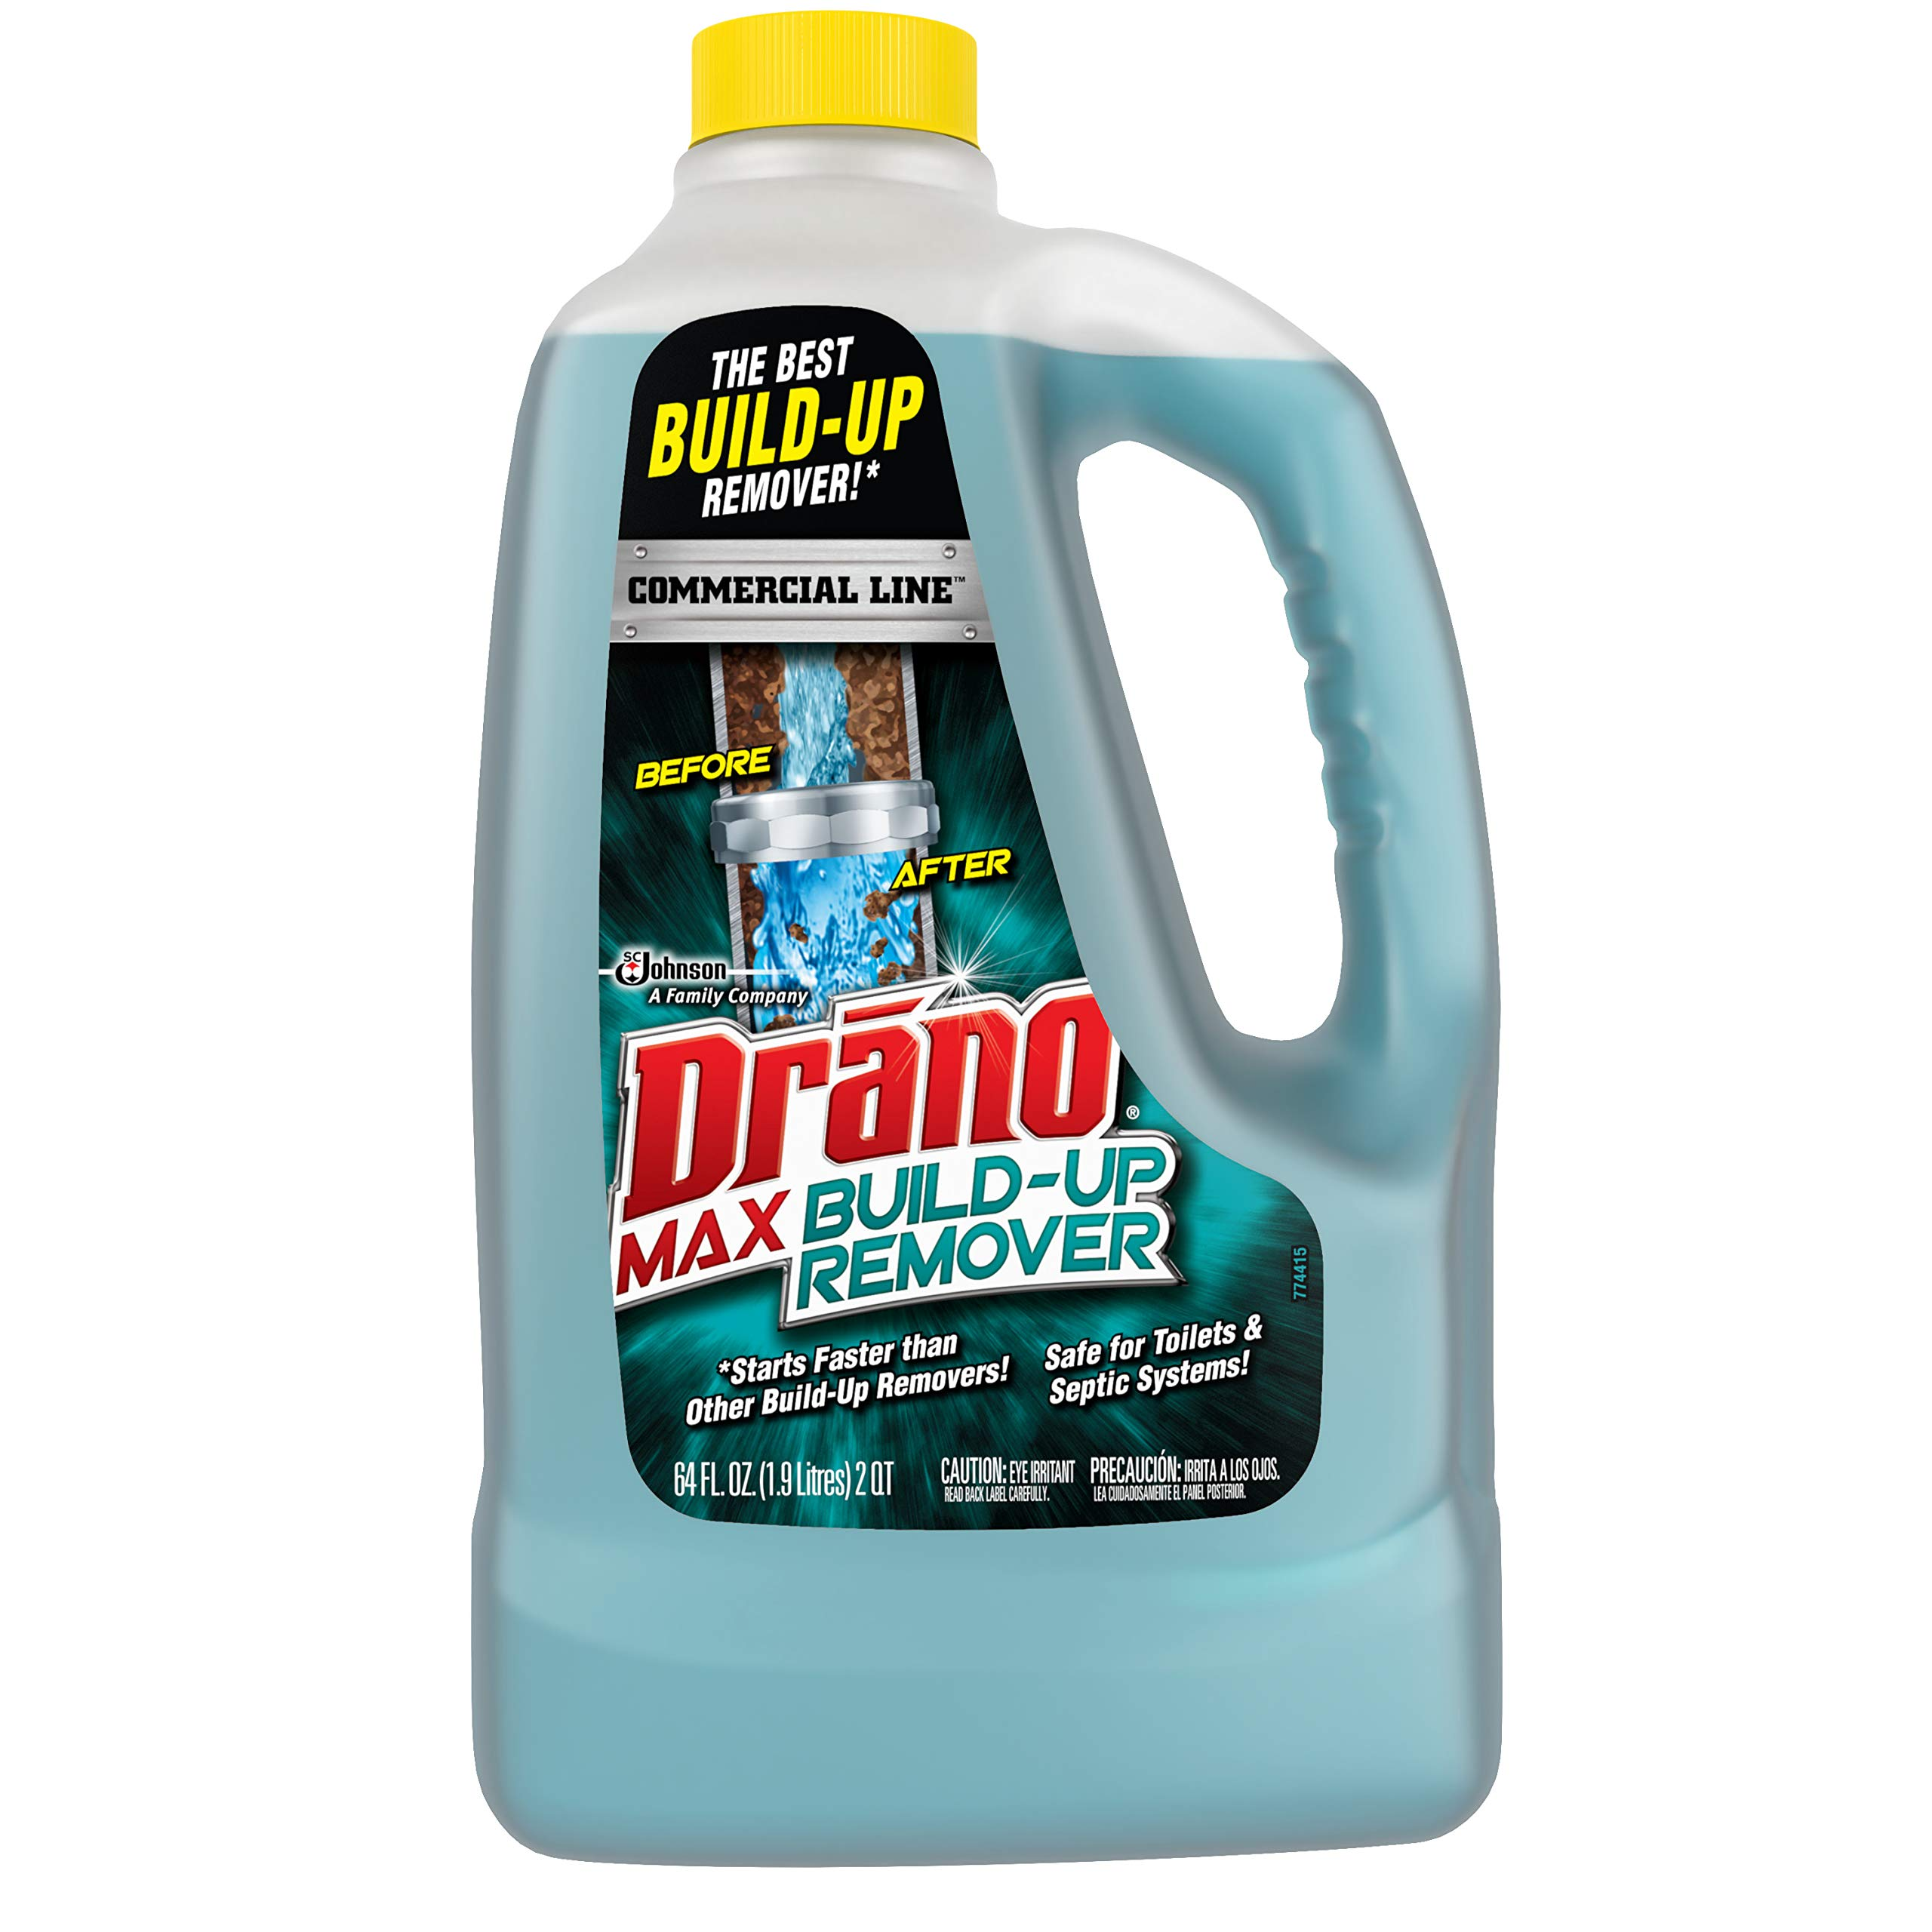 Drano Max Build-Up Remover, Commercial Line, 64 Fluid Ounce (Pack of 4)